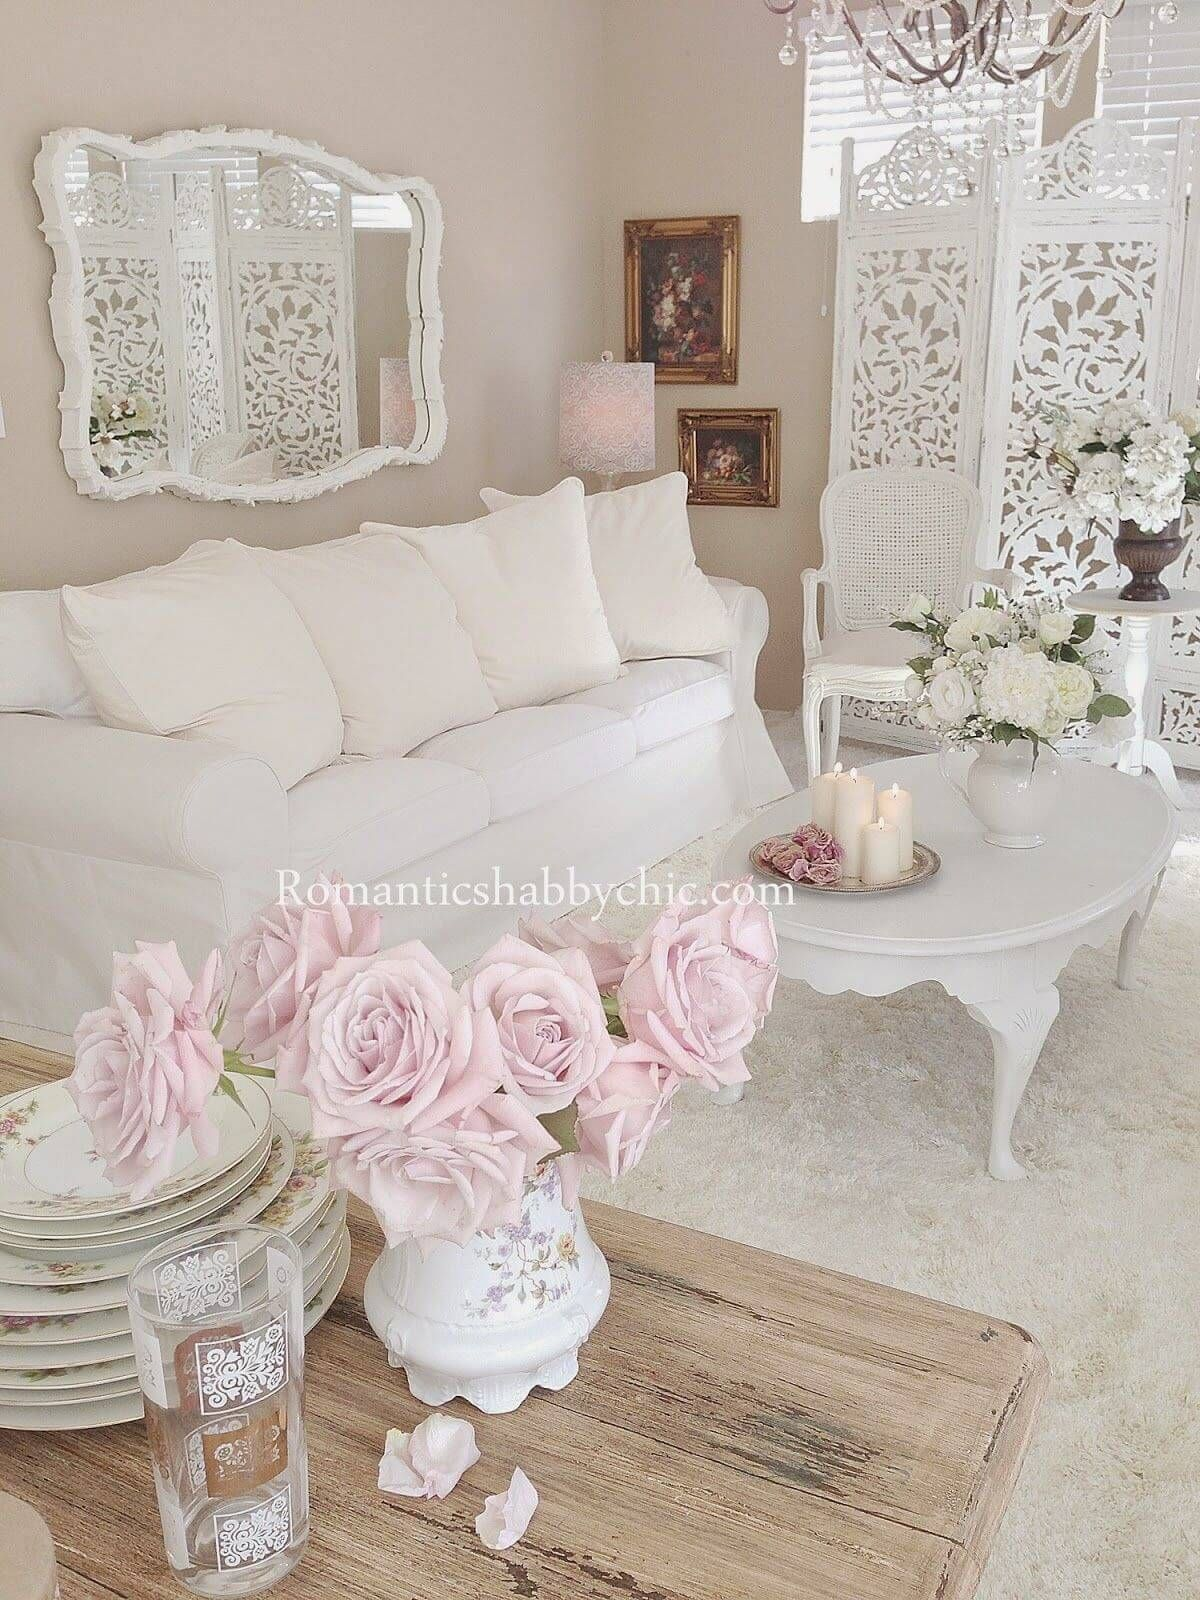 32 Shabby Chic Living Room Decor Ideas For A Comfy And Gorgeous Interior Camere Shabby Chic Salotto Chic Camera Da Letto Chic